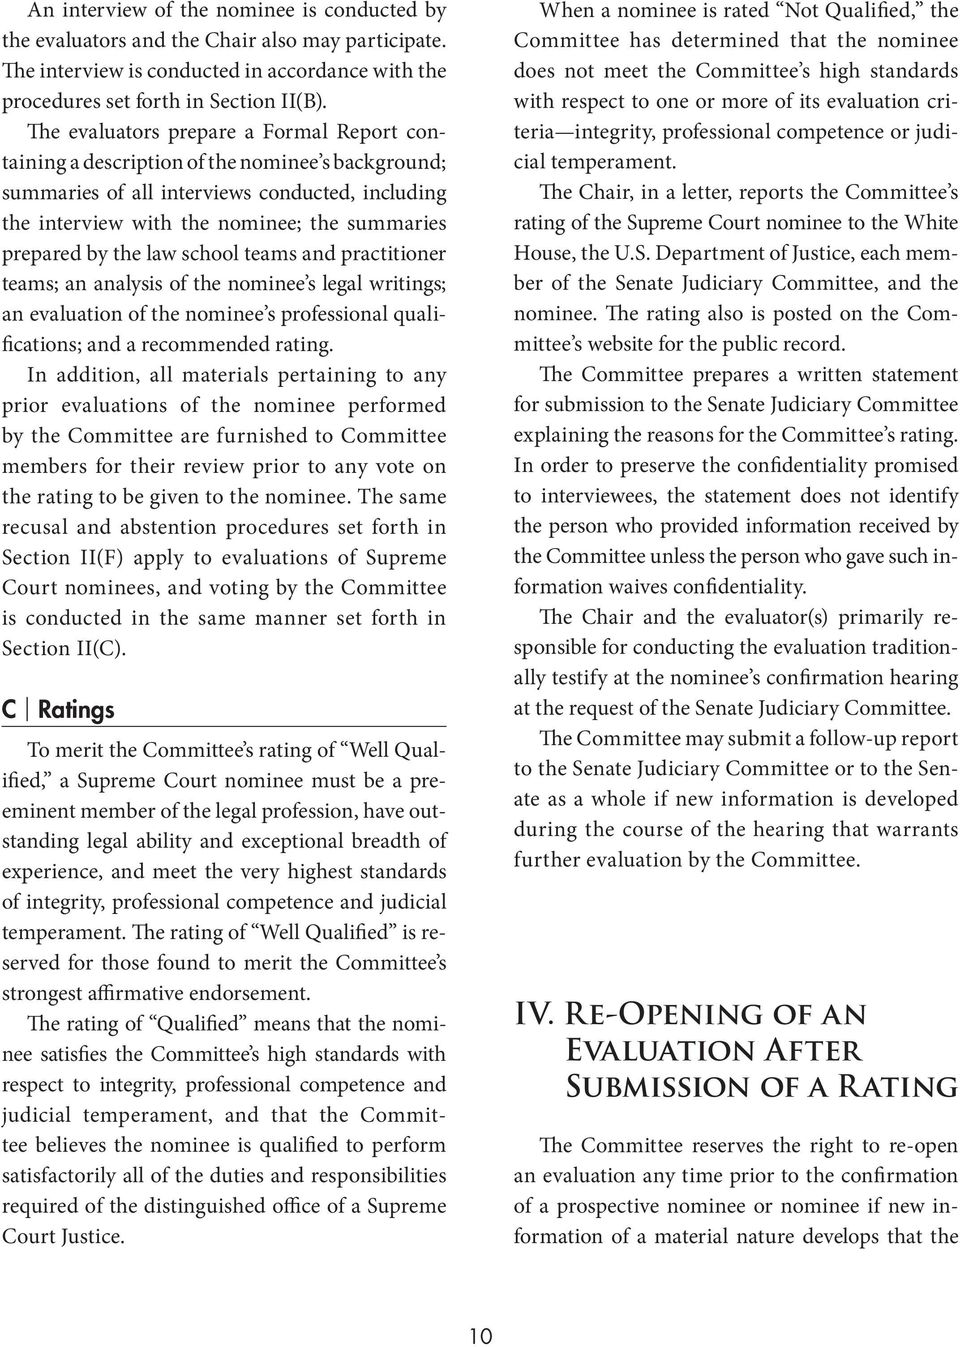 the law school teams and practitioner teams; an analysis of the nominee s legal writings; an evaluation of the nominee s professional qualifications; and a recommended rating.